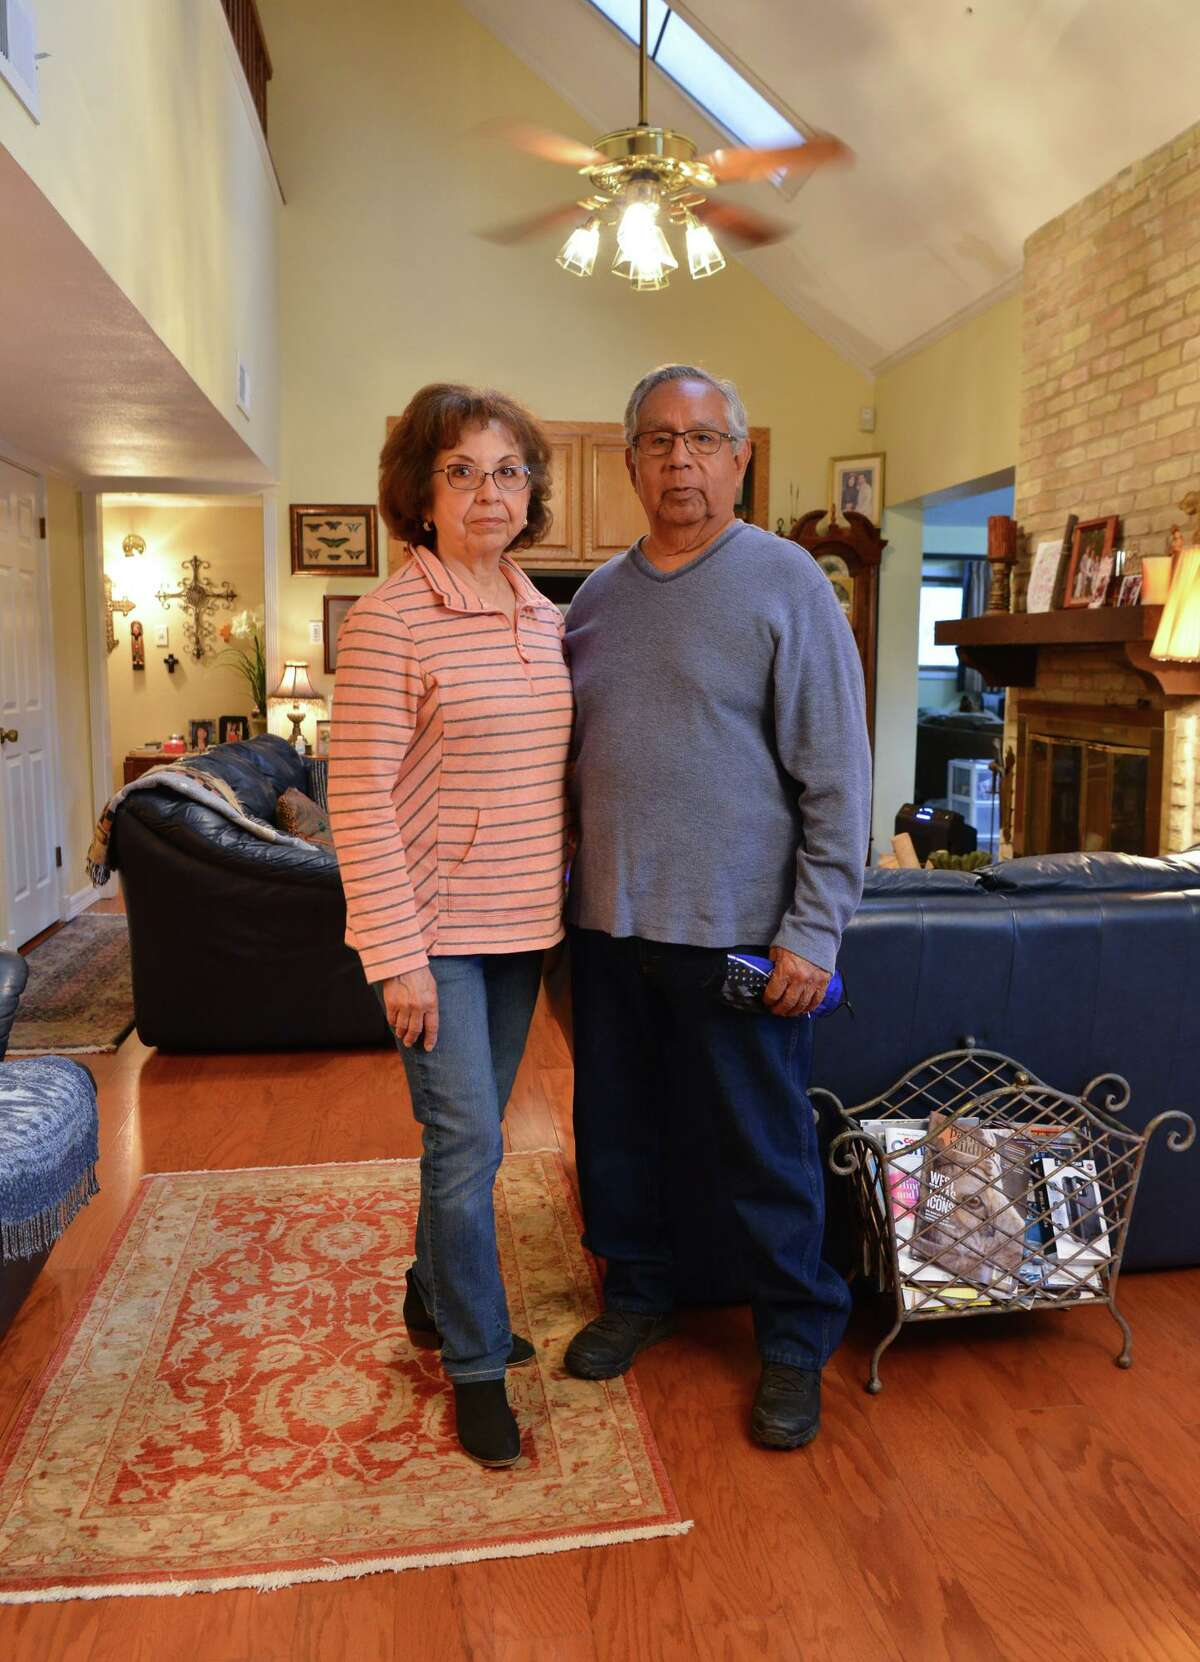 Robert Renteria and his wife, Cynthia, of San Antonio, both had COVID-19 in the summer. They are participating in a global study of the neurological effects of the coronavirus. Leading the study is the Glenn Biggs Institute for Alzheimer's and Neurodegenerative Diseases at UT Health San Antonio.